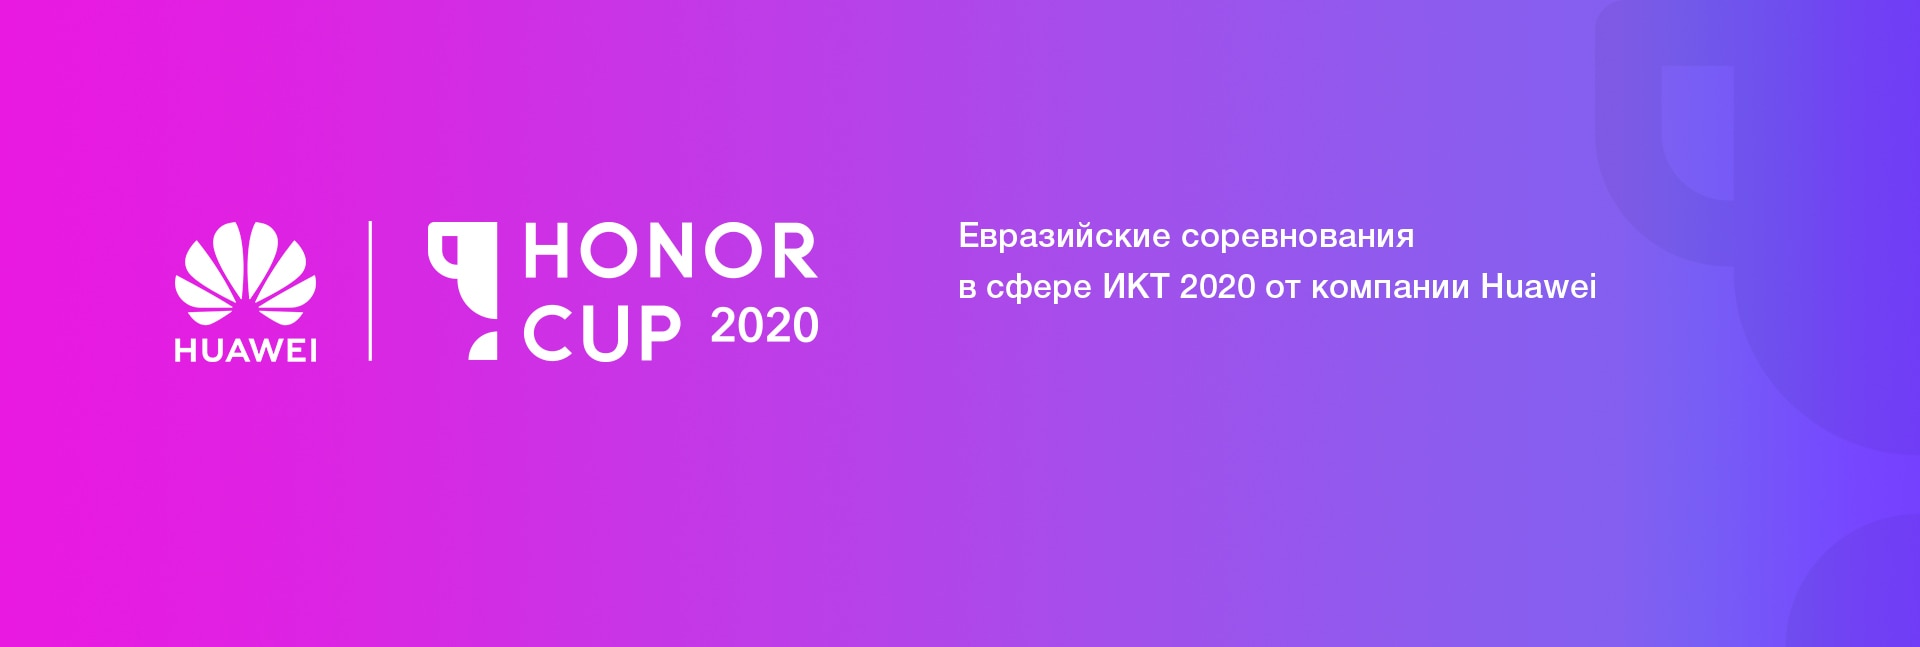 honor cup 2020 comp2